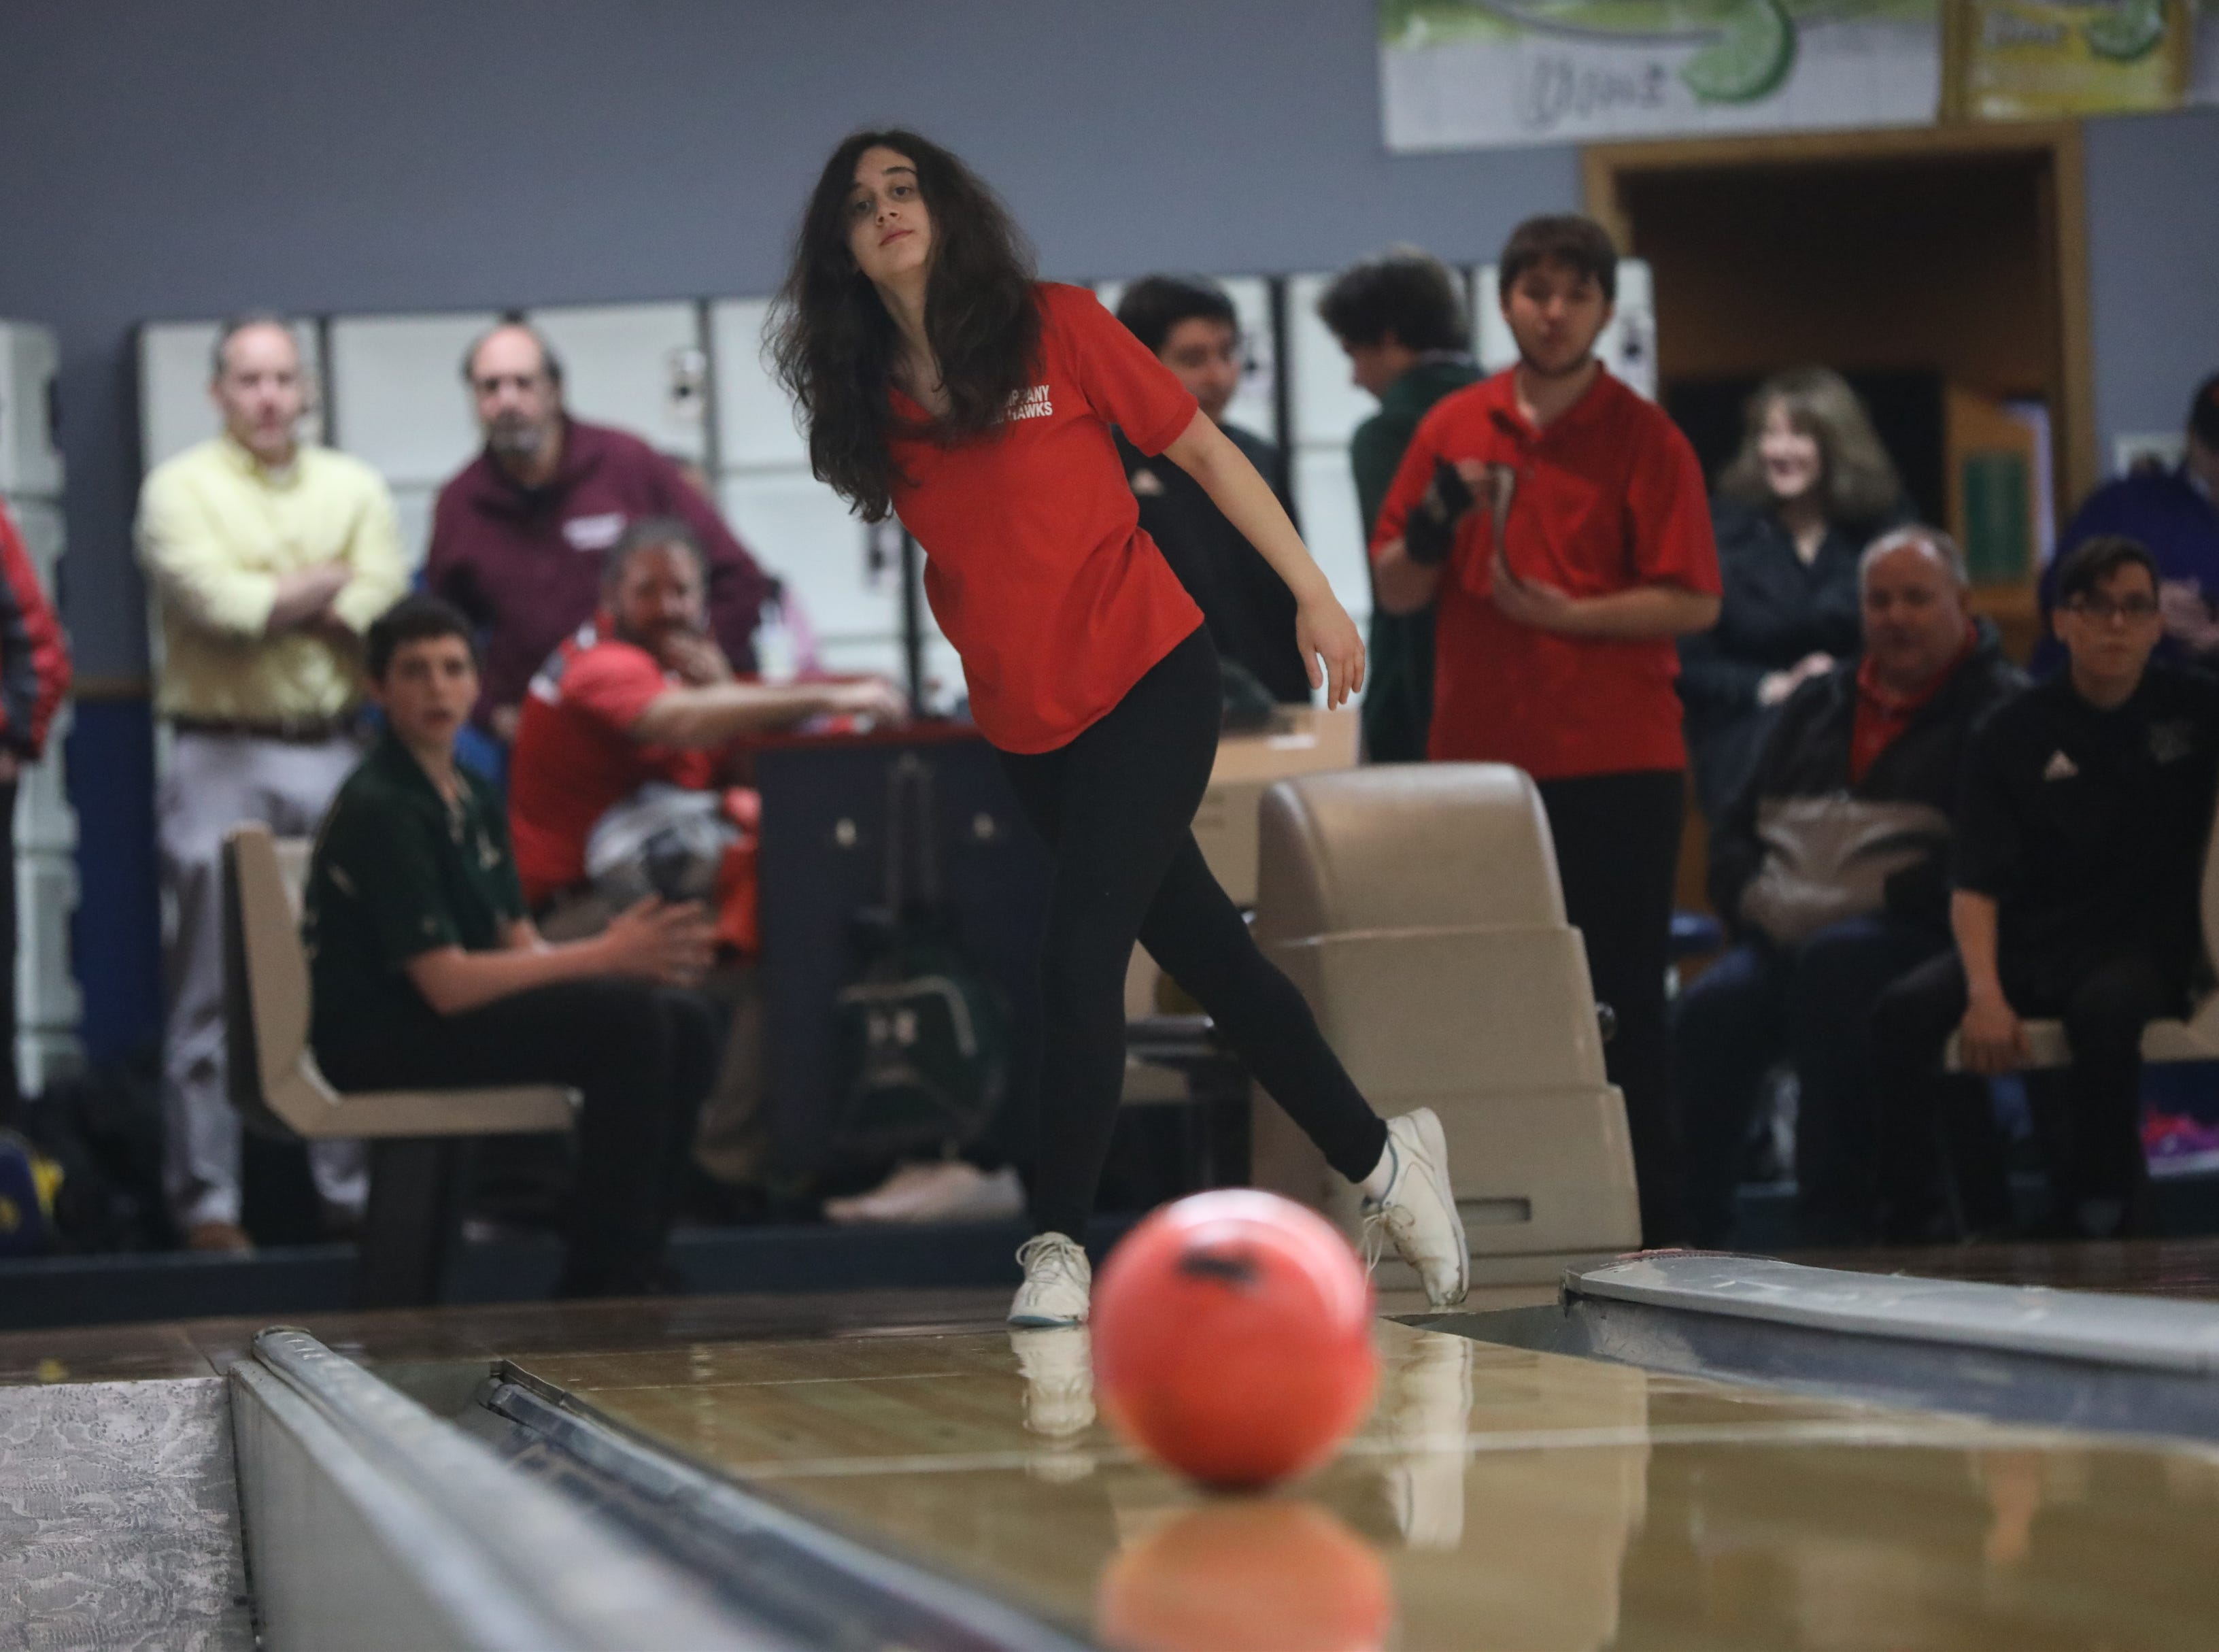 Lauren Marks, of Mt. Olive, competes in the Morris County Bowling Tournament. Thursday, January 24, 2019